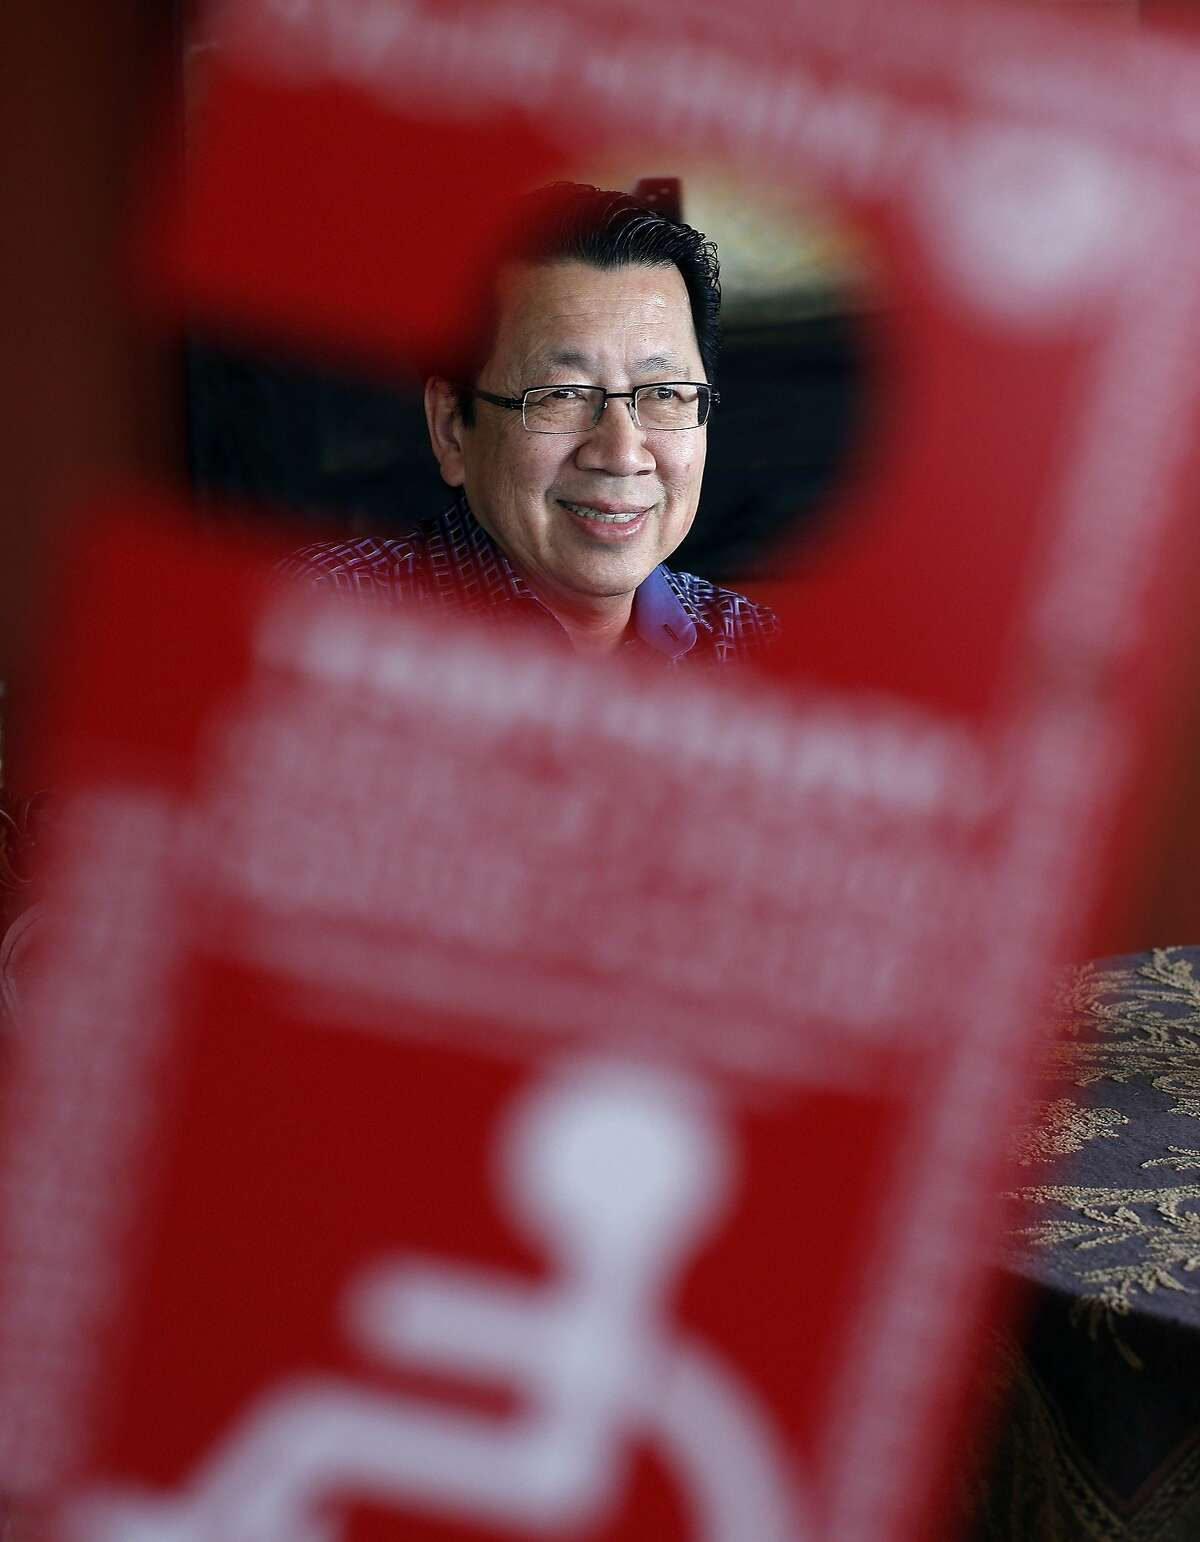 Journalist and author Ben Fong-Torres is seen through his temporary disabled parking placard in his San Francisco, Calif., home on Monday, April 21, 2014. Fong-Torres, who has recently recovered from hip replacement surgery, has largely returned to a normal walking routine, shedding his walker and for the most part his cane, which he says he really only uses for a sense of security.